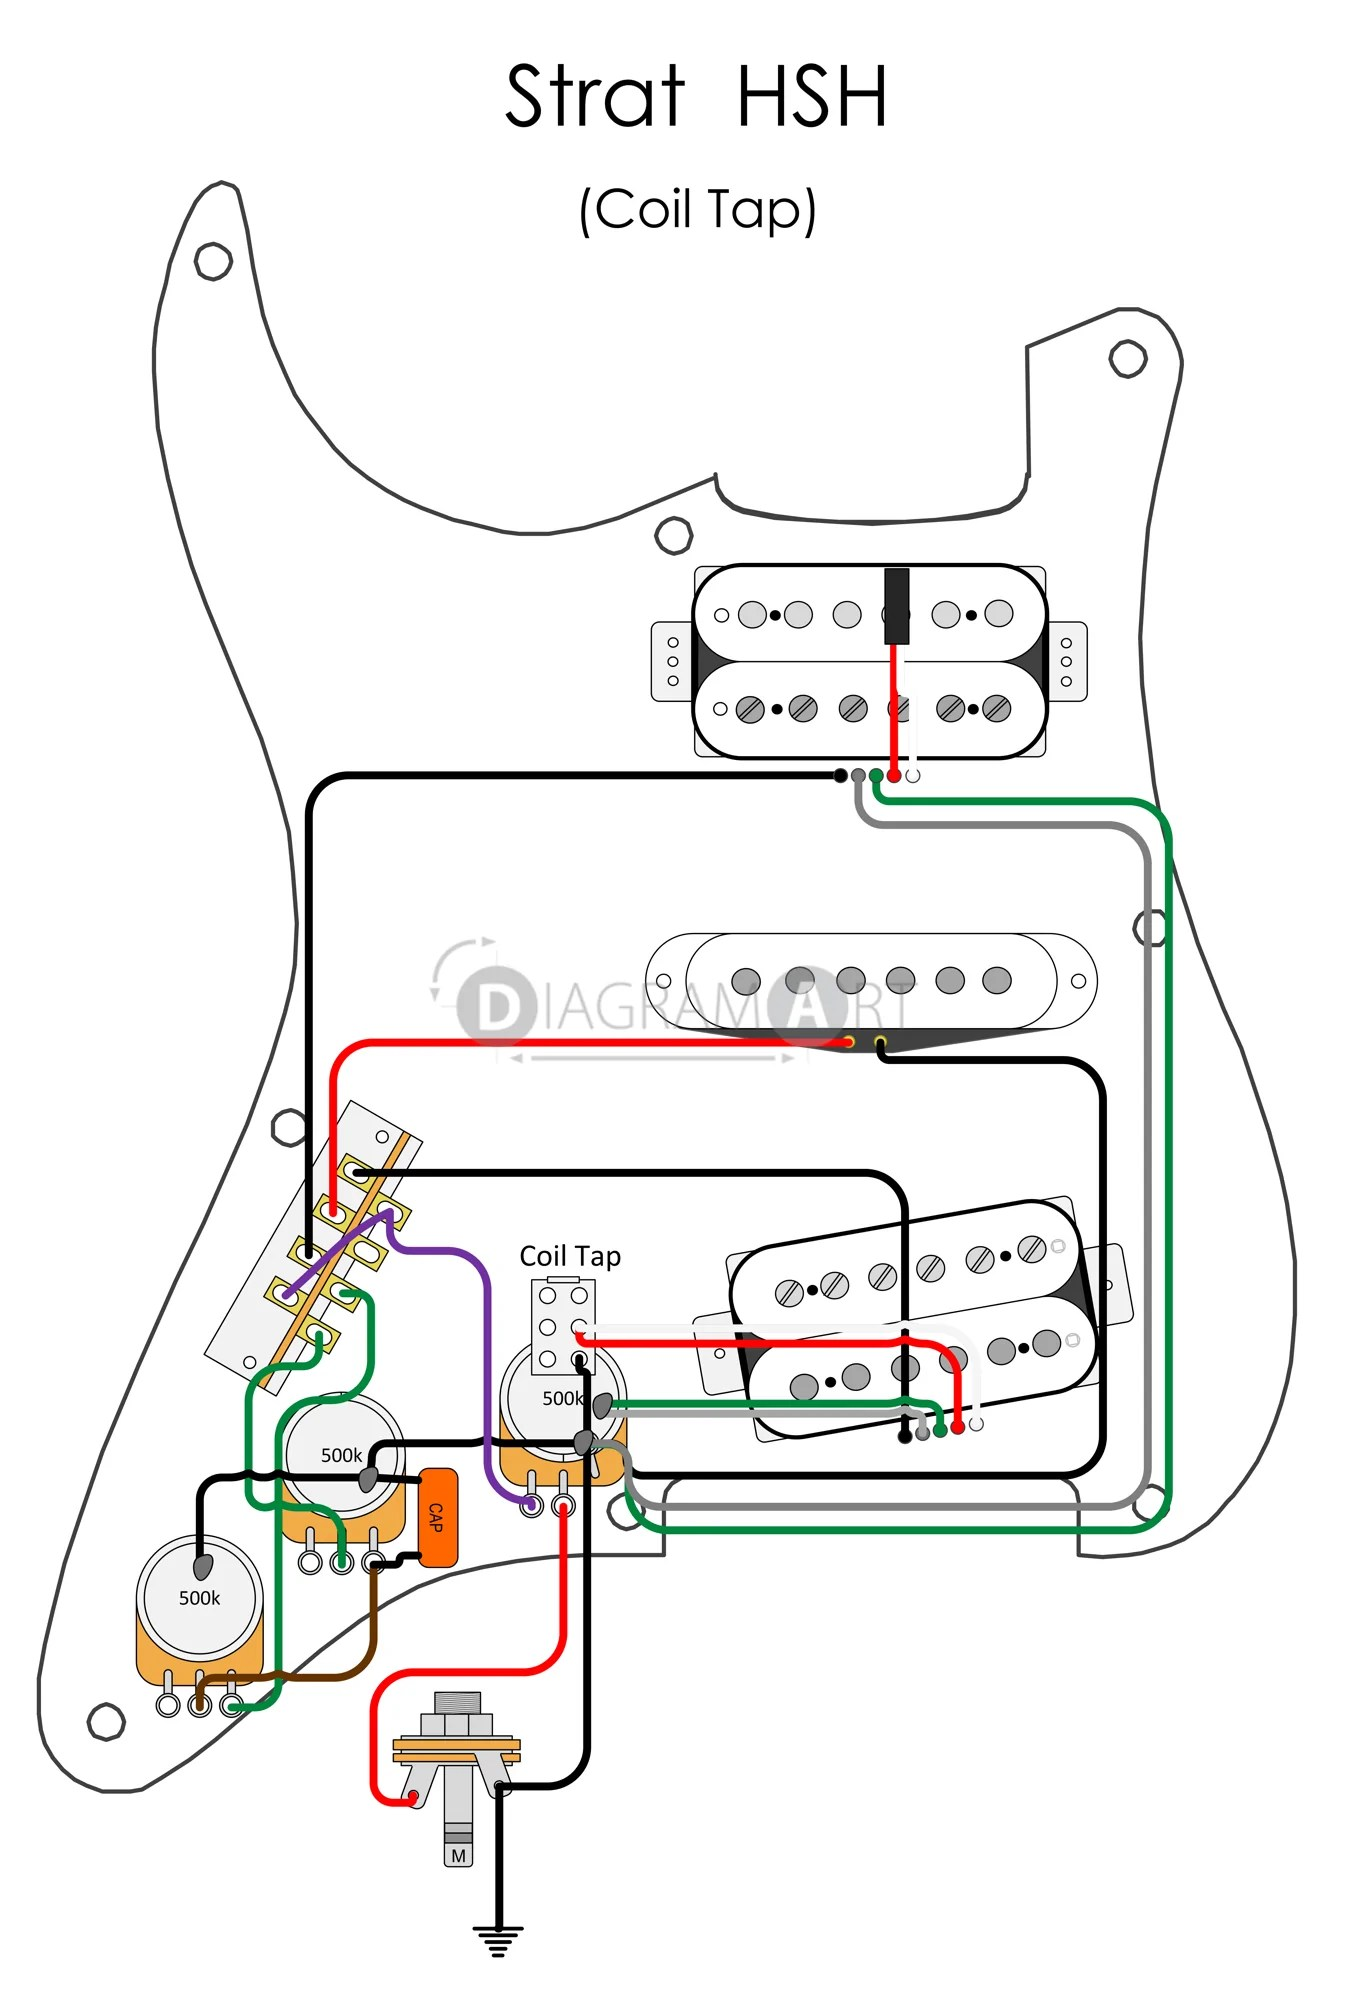 hsh wiring diagram wiring diagrams lolstrat wiring diagram hsh today wiring diagram update seymour duncan hsh [ 1348 x 2000 Pixel ]